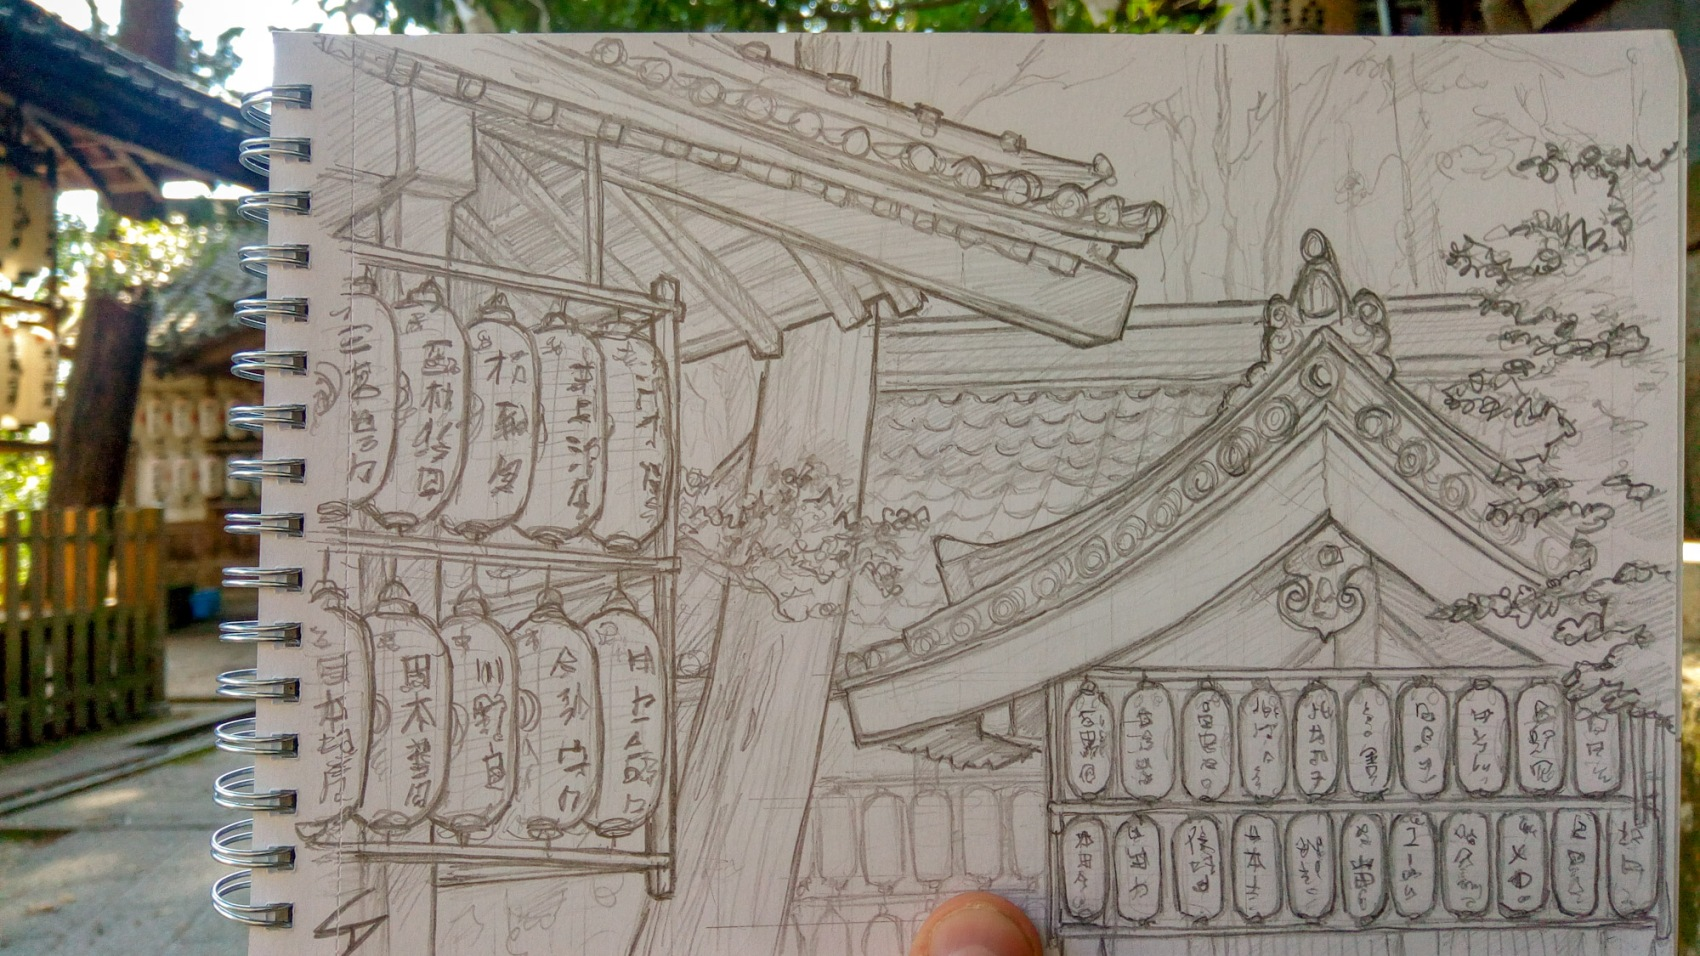 Urban photo art – Sakyo-Ku, Kyoto, Japan. 'Yagami Shrine.' Artwork from my latest travel art blog article 'Sakura Japan.' Now online - sketchbookexplorer.com @davidasutton @sketchbookexplorer Facebook.com/davidanthonysutton #sketch #drawing #art #japan #Kyoto #yagamishrine #shinto #samurai #travel #travelblog #cherryblossom #cherryblossomseason #cherryblossomjapan